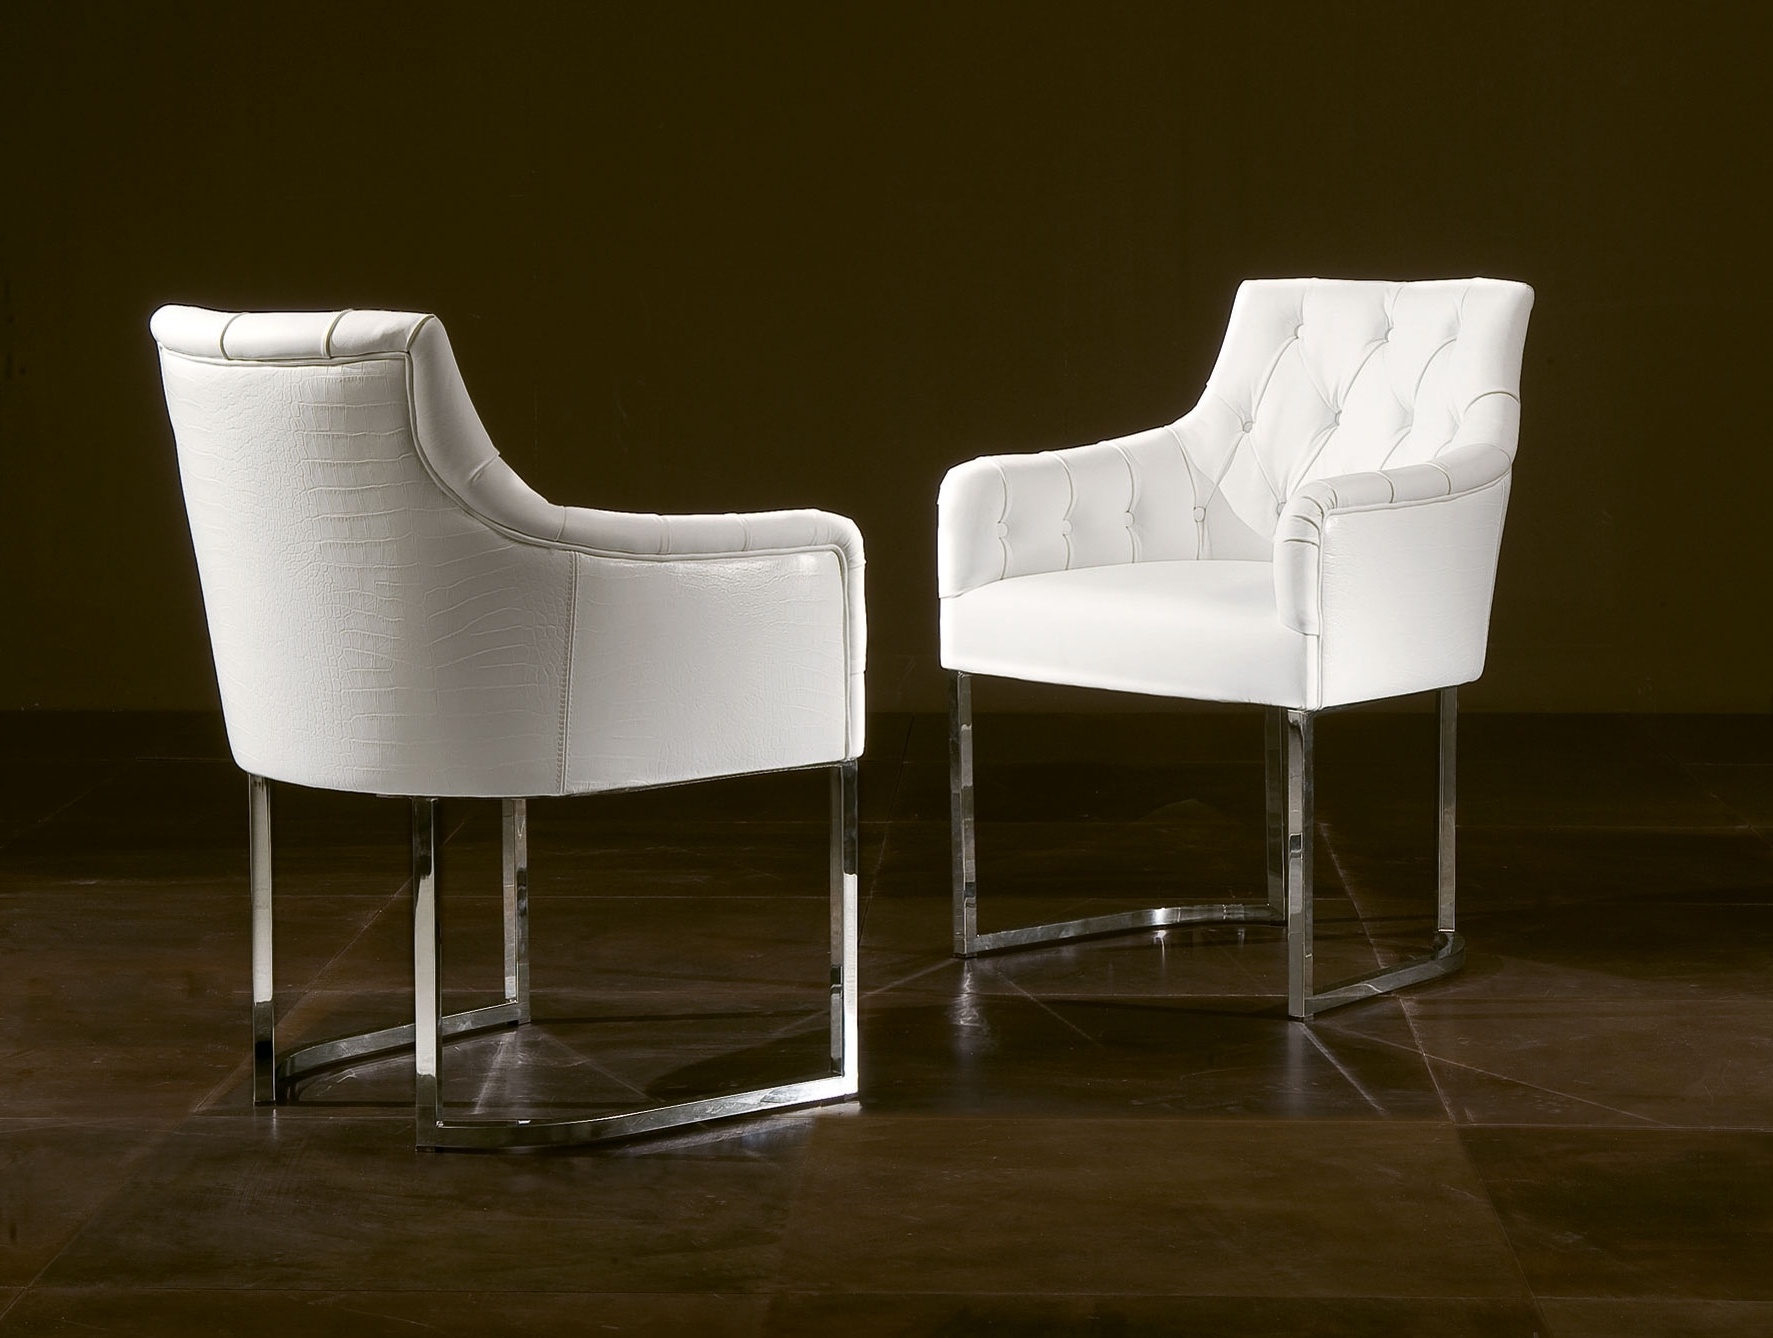 White Leather Dining Chairs Throughout Widely Used Nella Vetrina Rugiano Guendalina 5032 Dining Armchair White Leather (View 22 of 25)